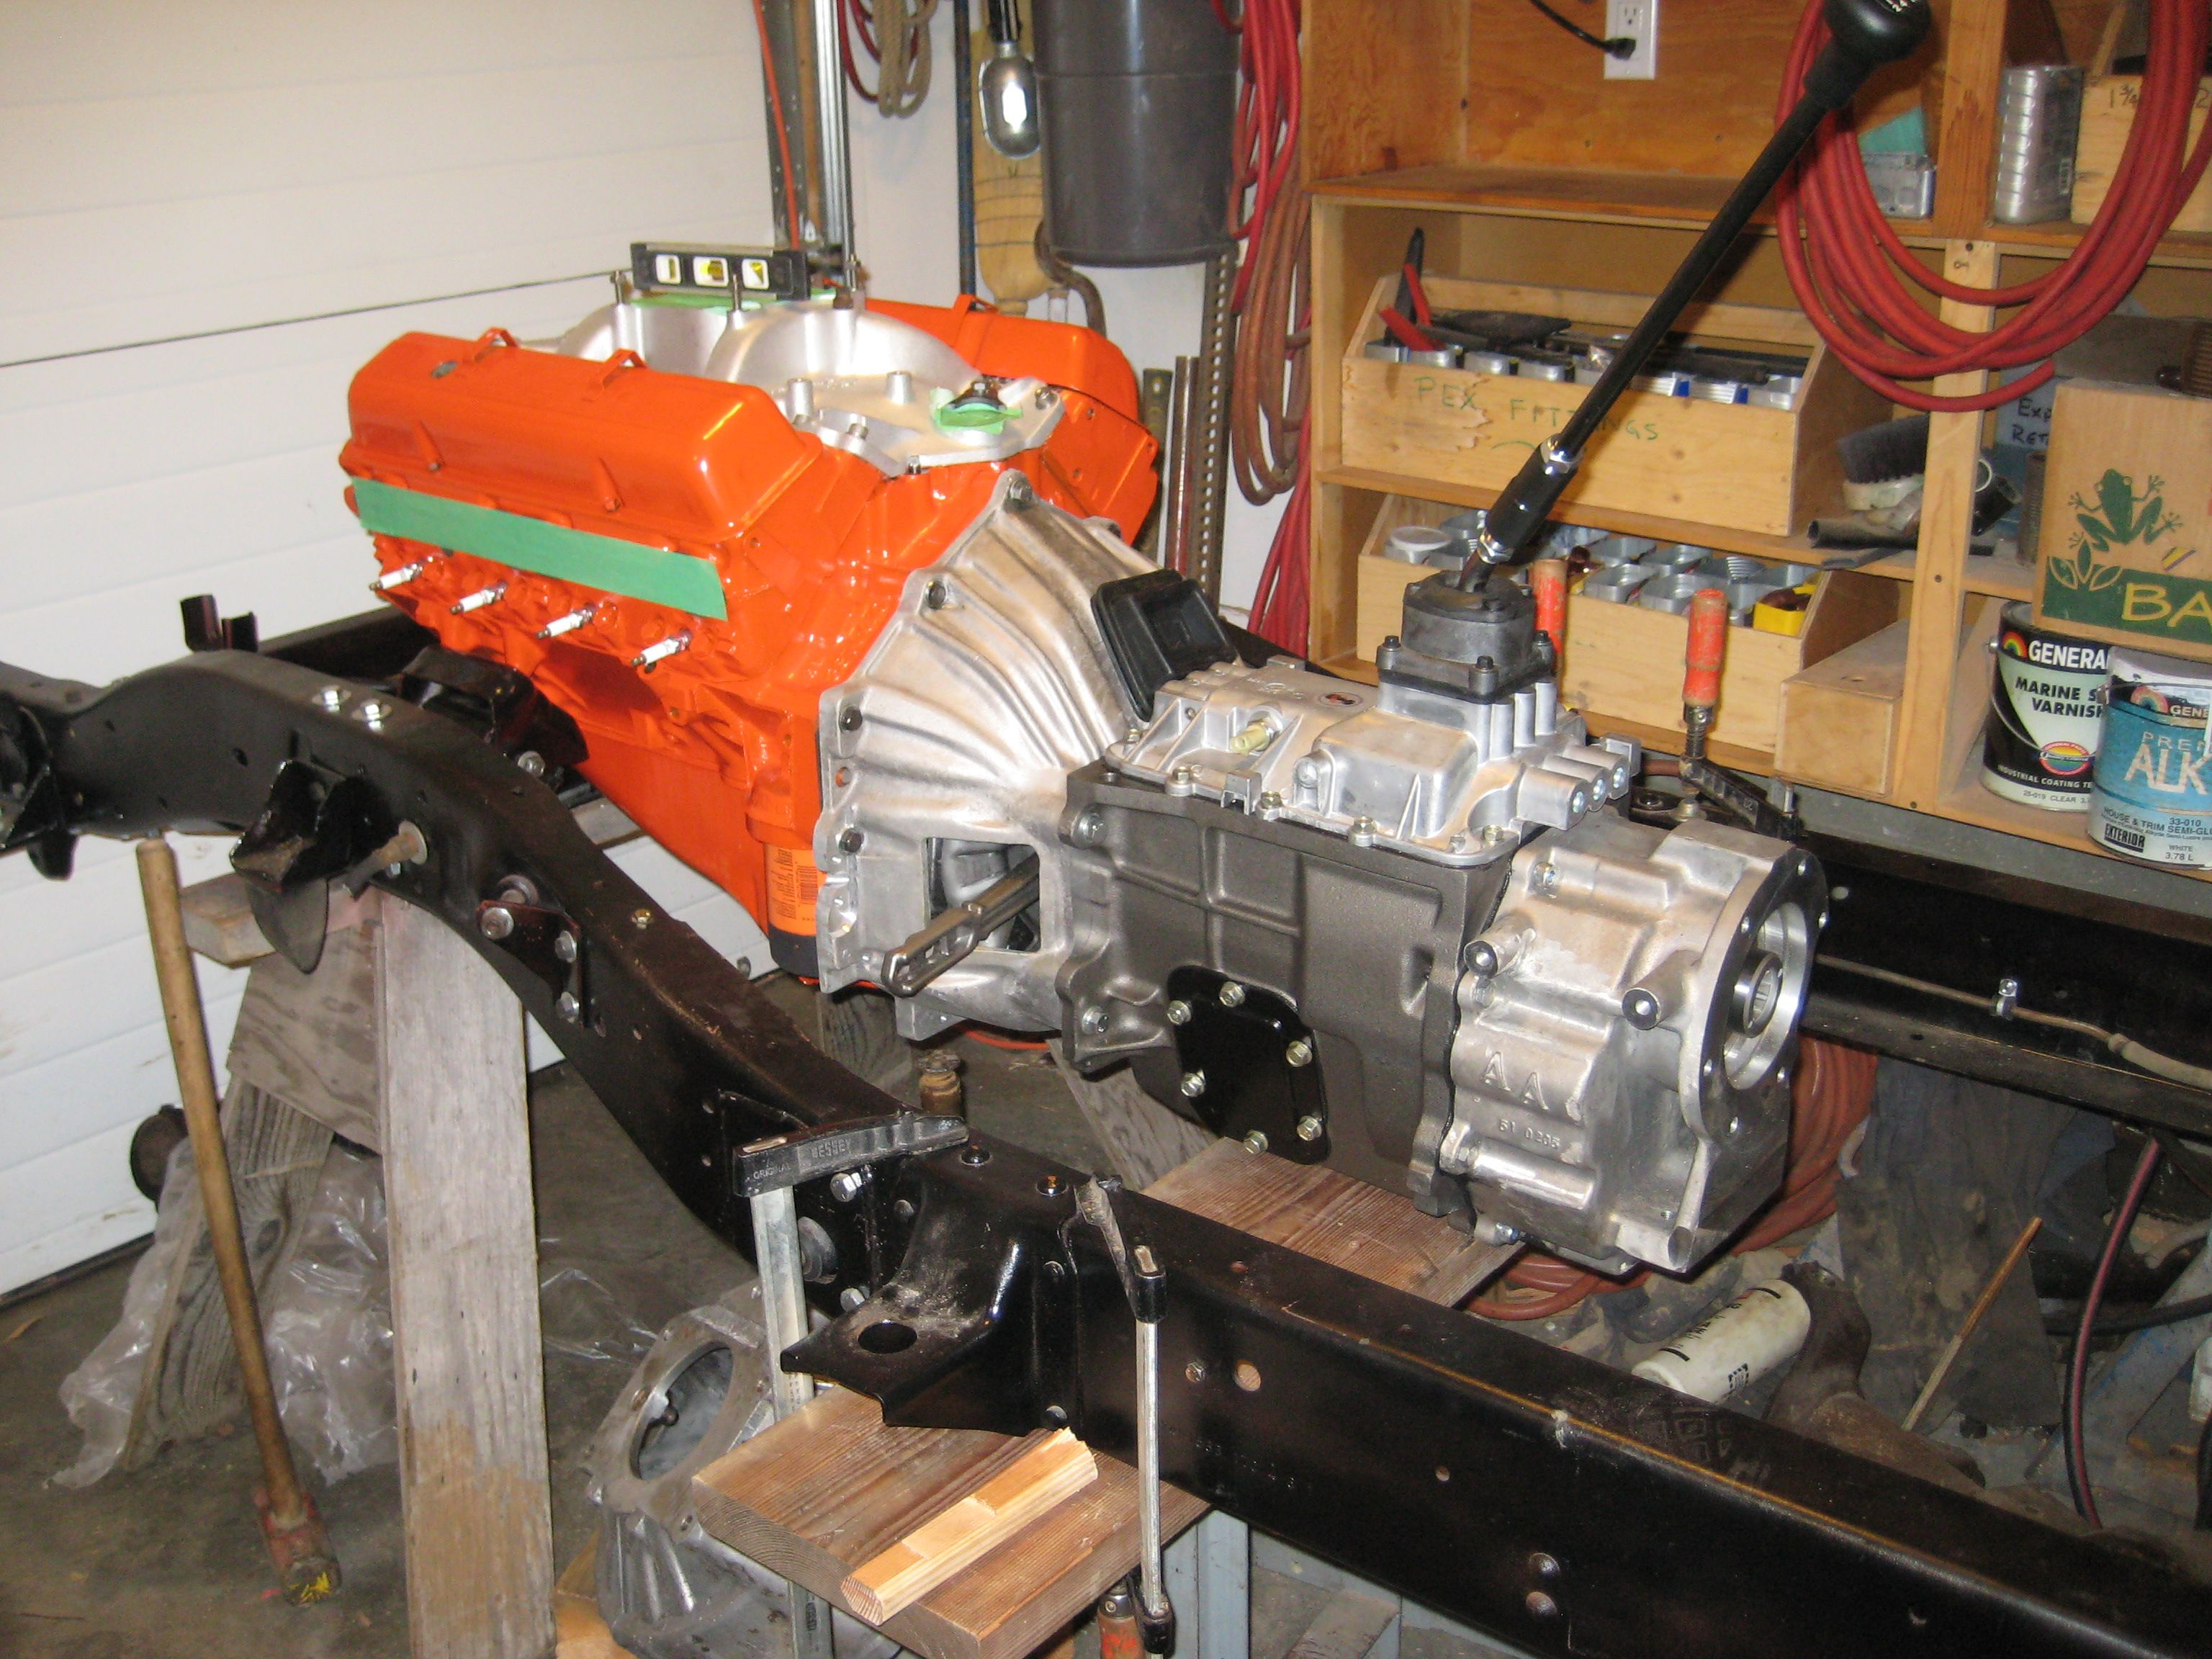 Nv4500 To Np205 Best Car Release And Reviews 2019 2020 Cases Gt Dodge Np241 Transfer Case Parts Exploded Diagram In A K10 20 The 1947 Present